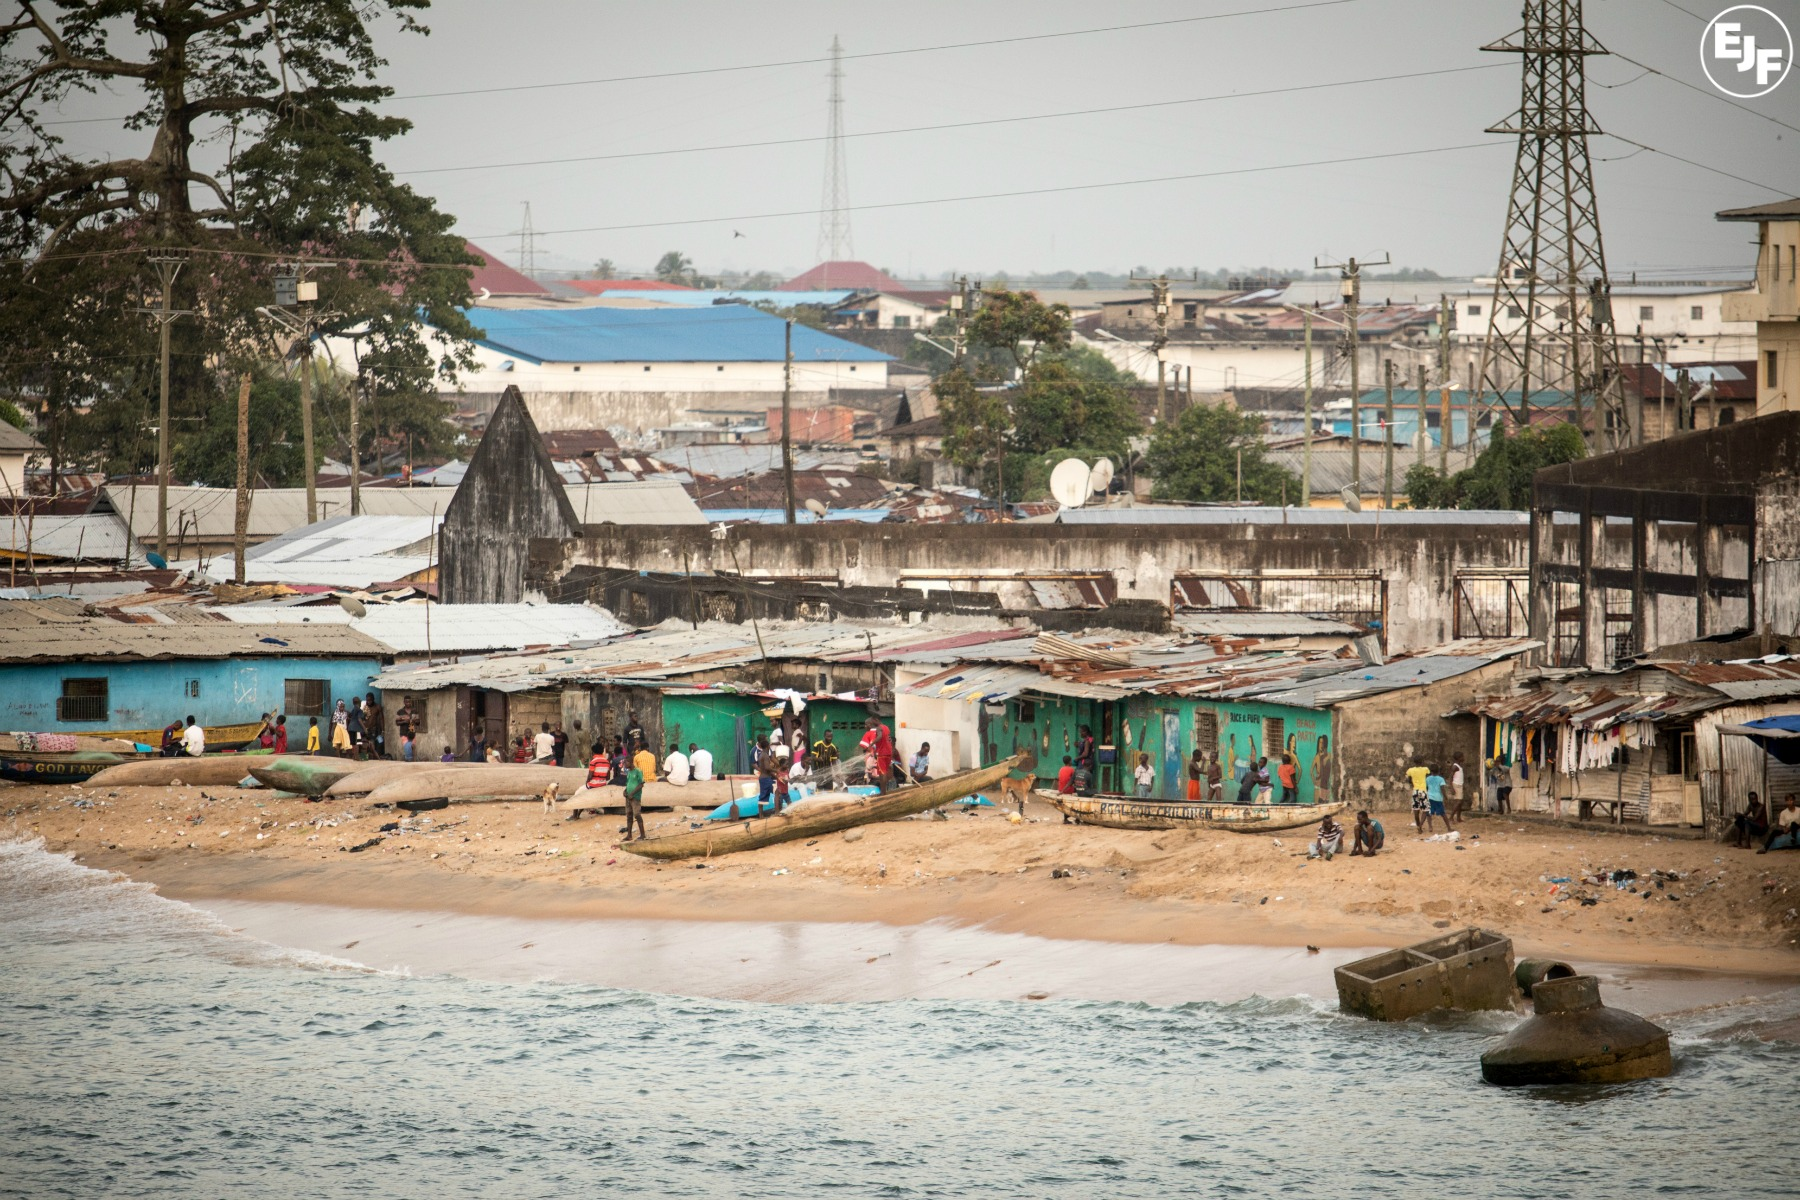 EJF calls on Liberian government to safeguard inshore exclusion zone